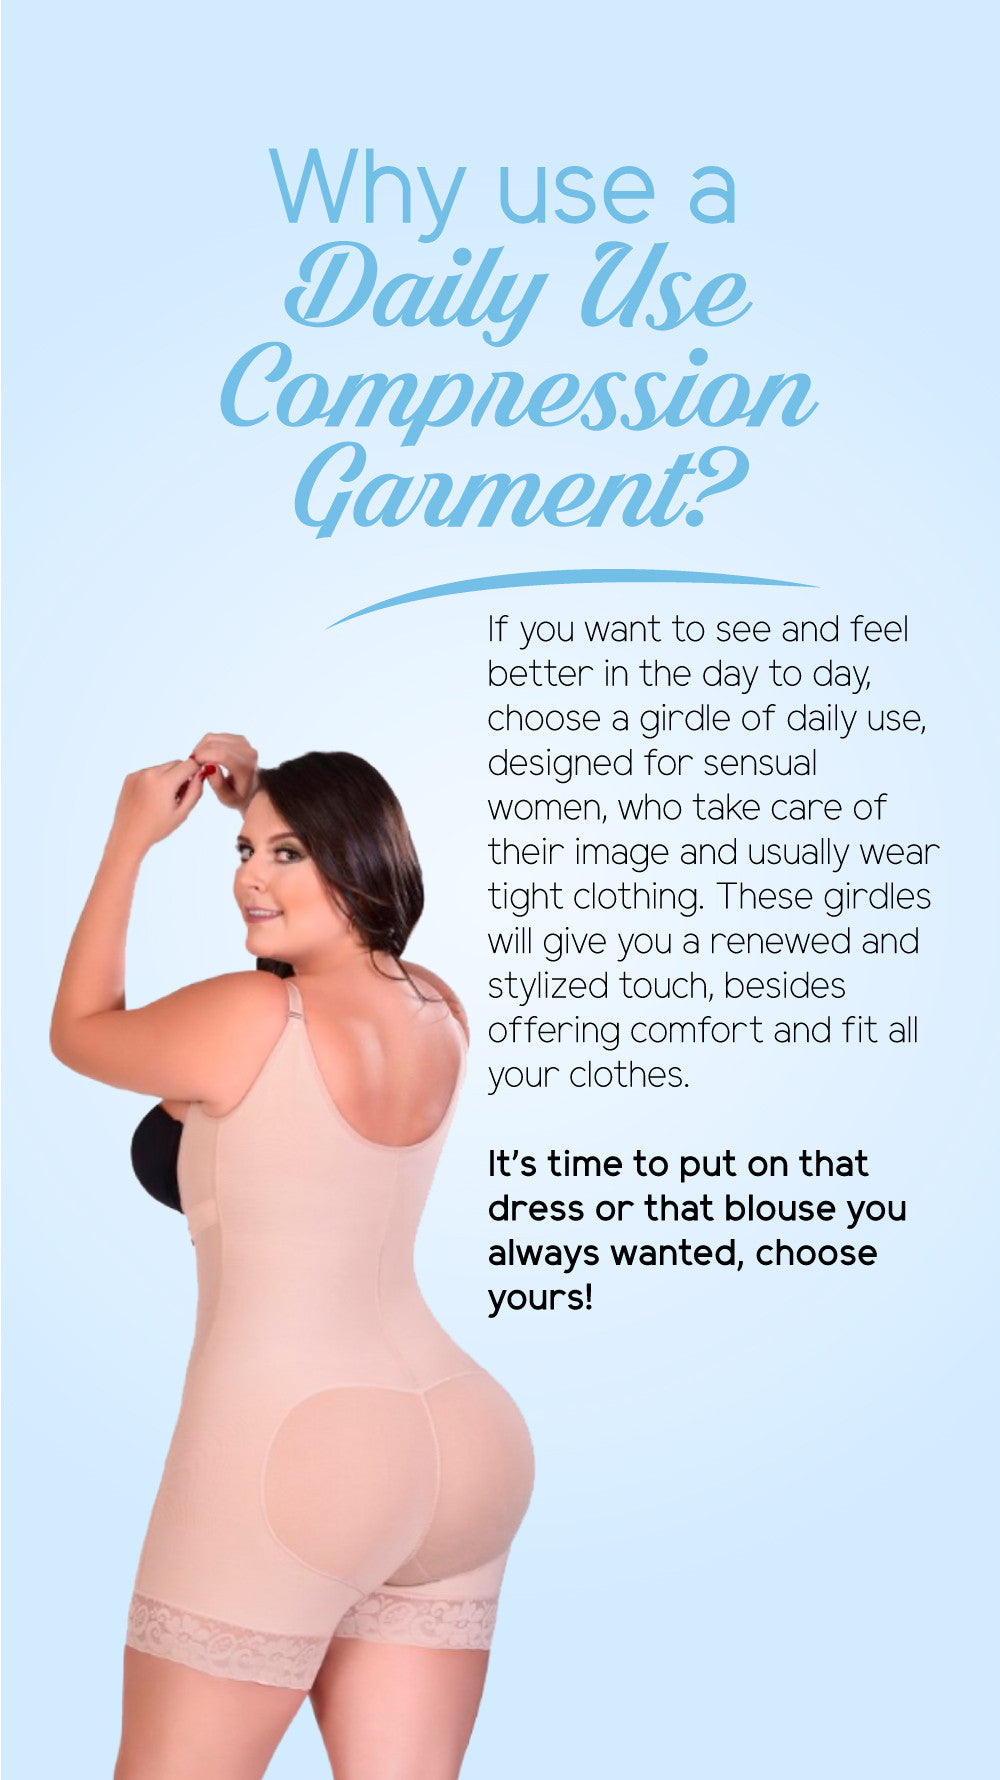 Why use a Daily Use Compression Garment?